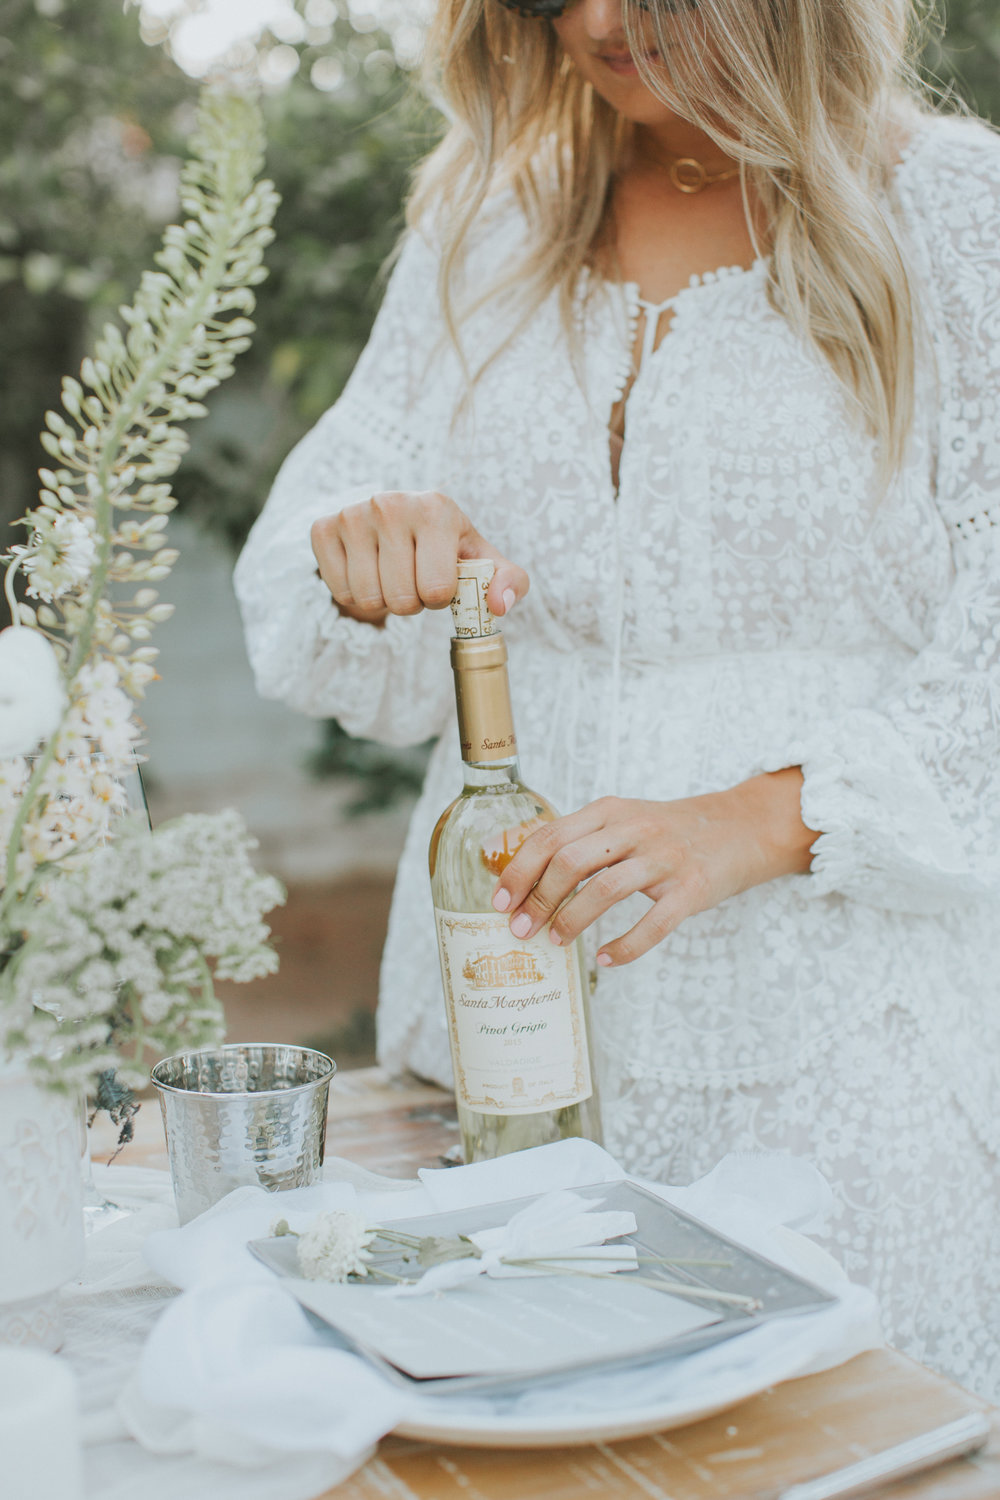 White dresses and white wine | A Fabulous Fete